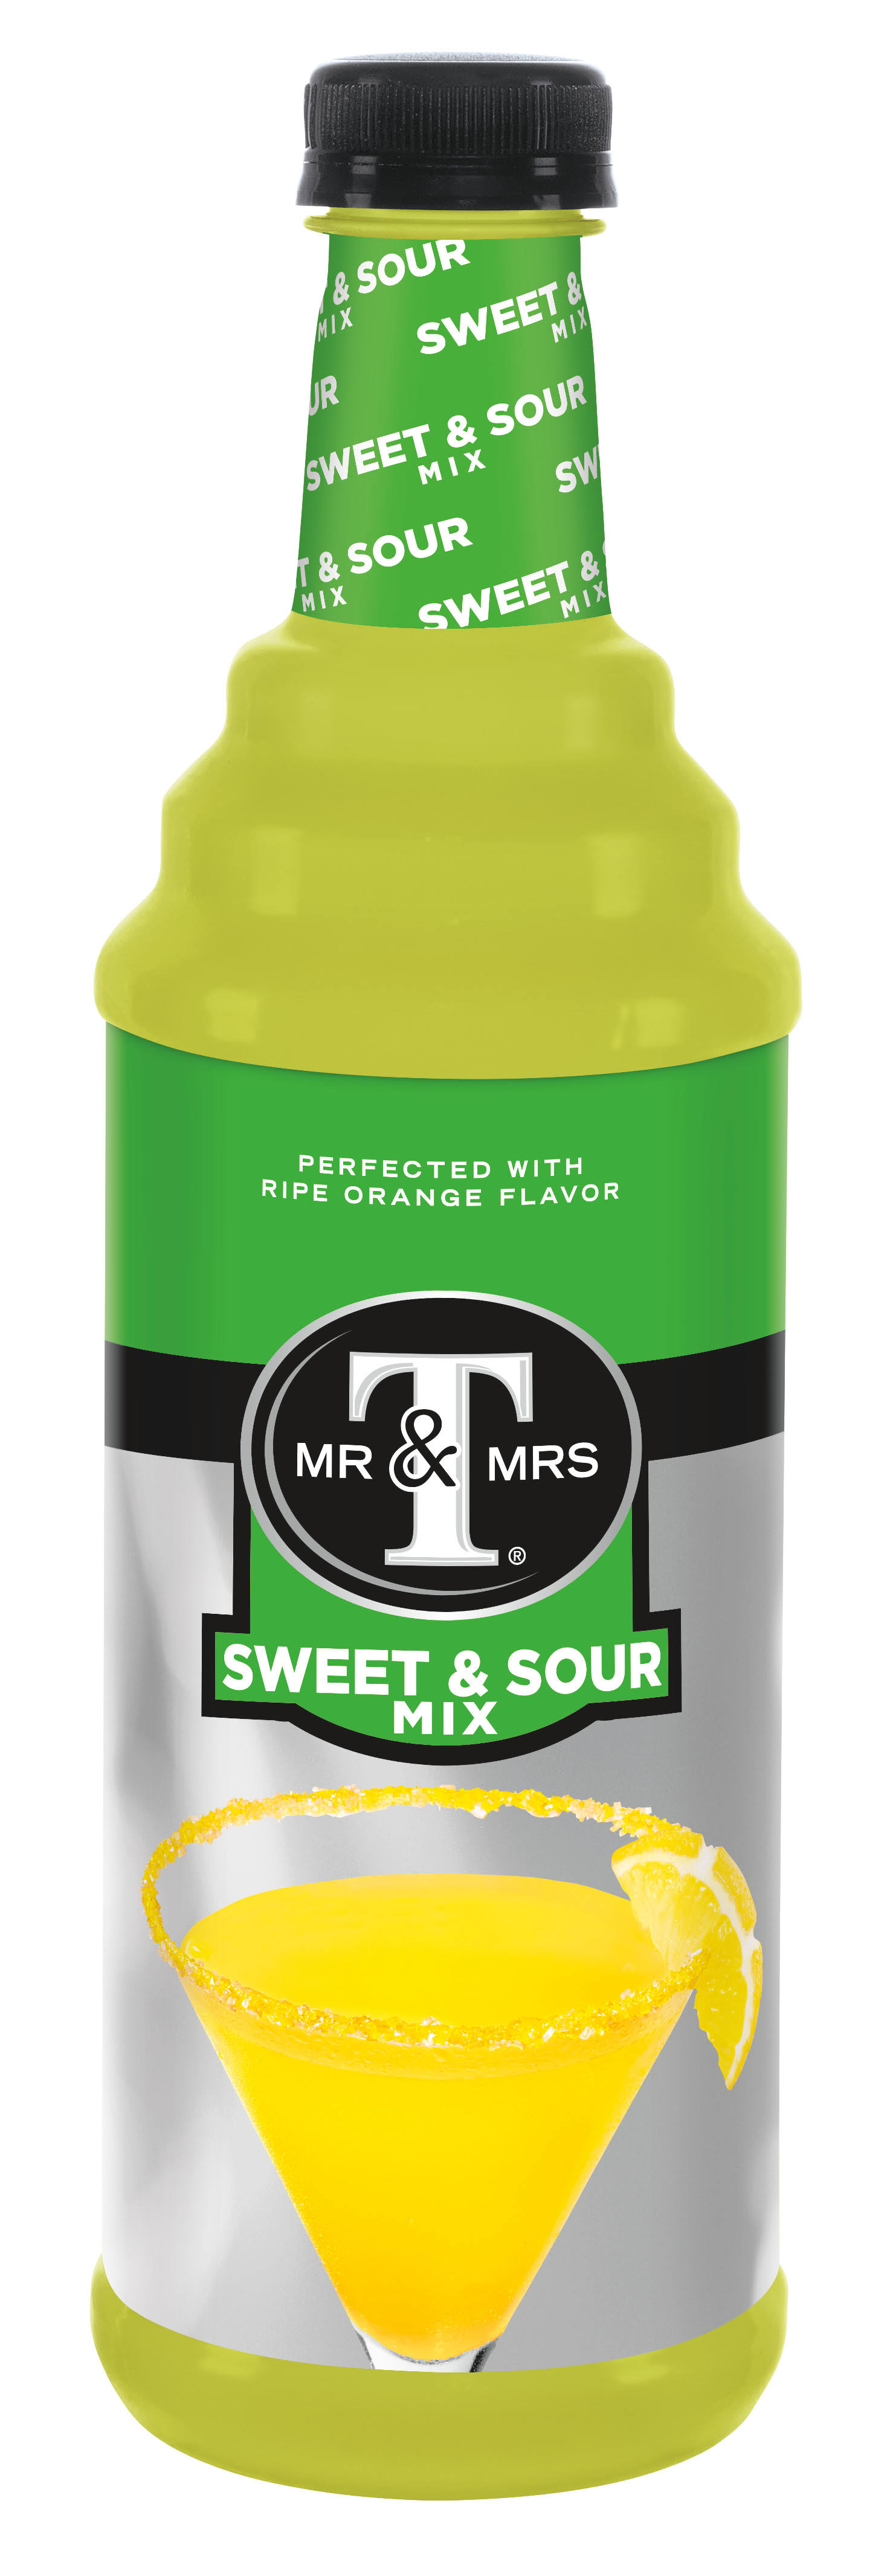 Mr & Mrs T Sweet & Sour Mix - 1l